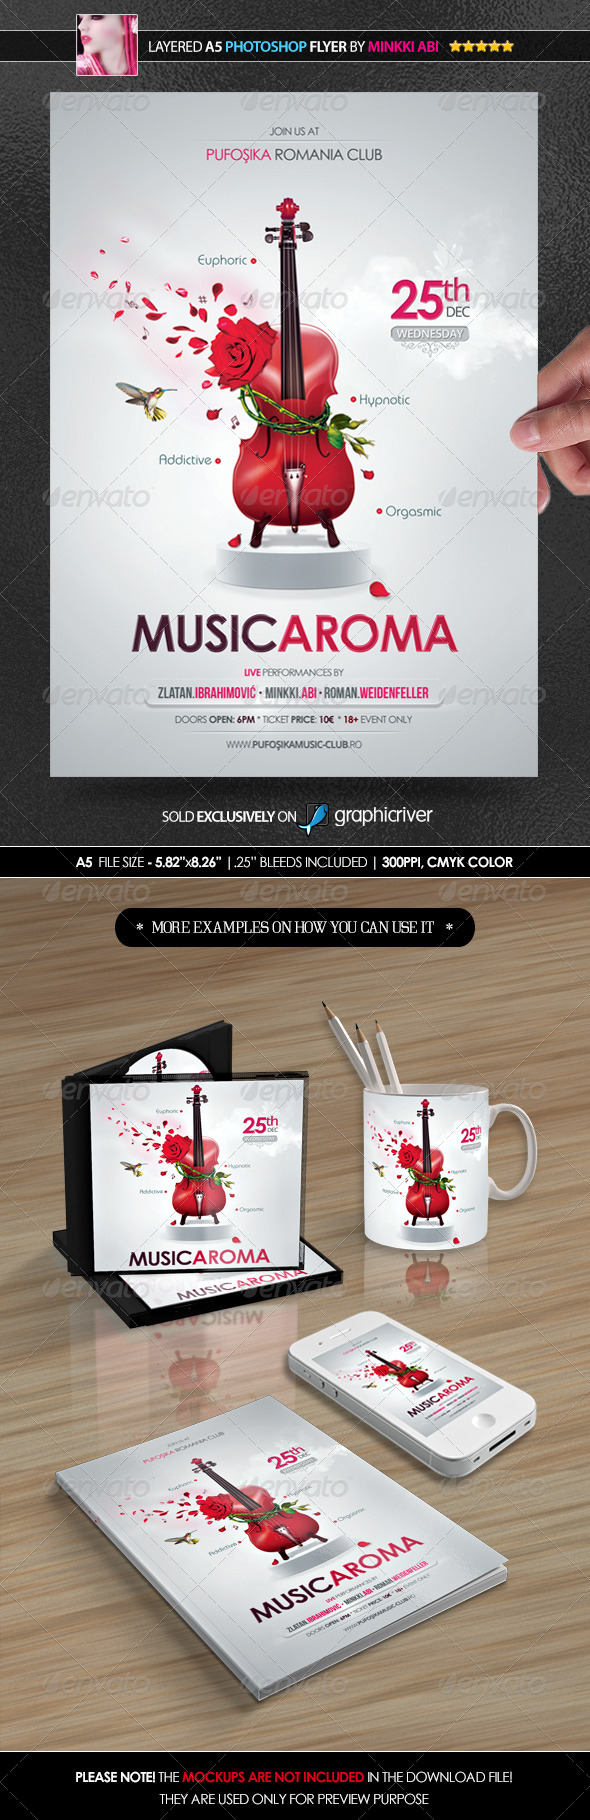 GraphicRiver Music Aroma Poster Flyer 6134478